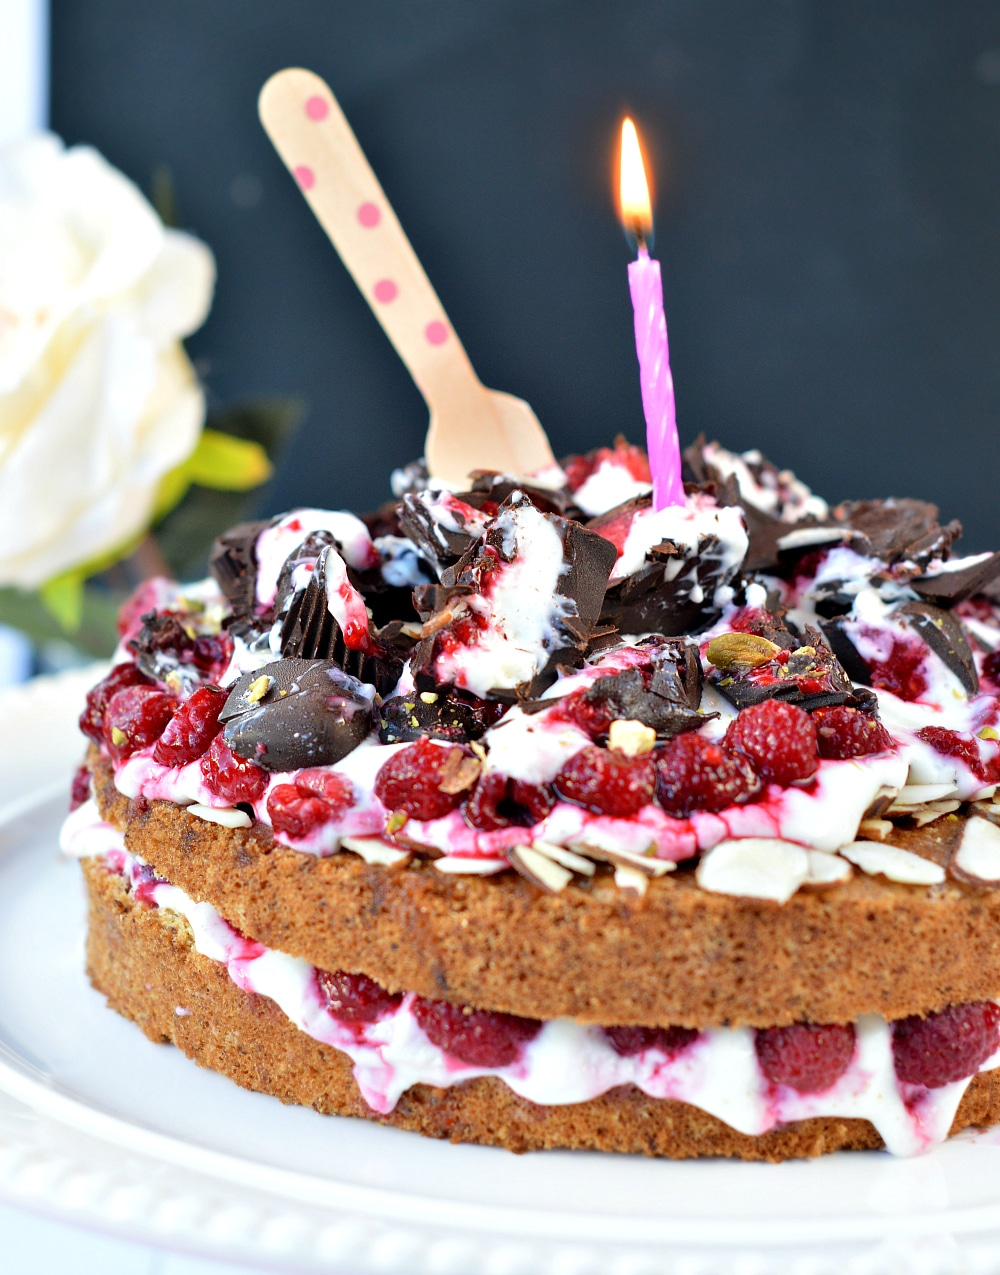 Healthy Sugar free vanilla cake with whipped cream and raspberries. An easy and delicious low carb birthday cake recipe with stevia. Diabetes friendly, gluten free.